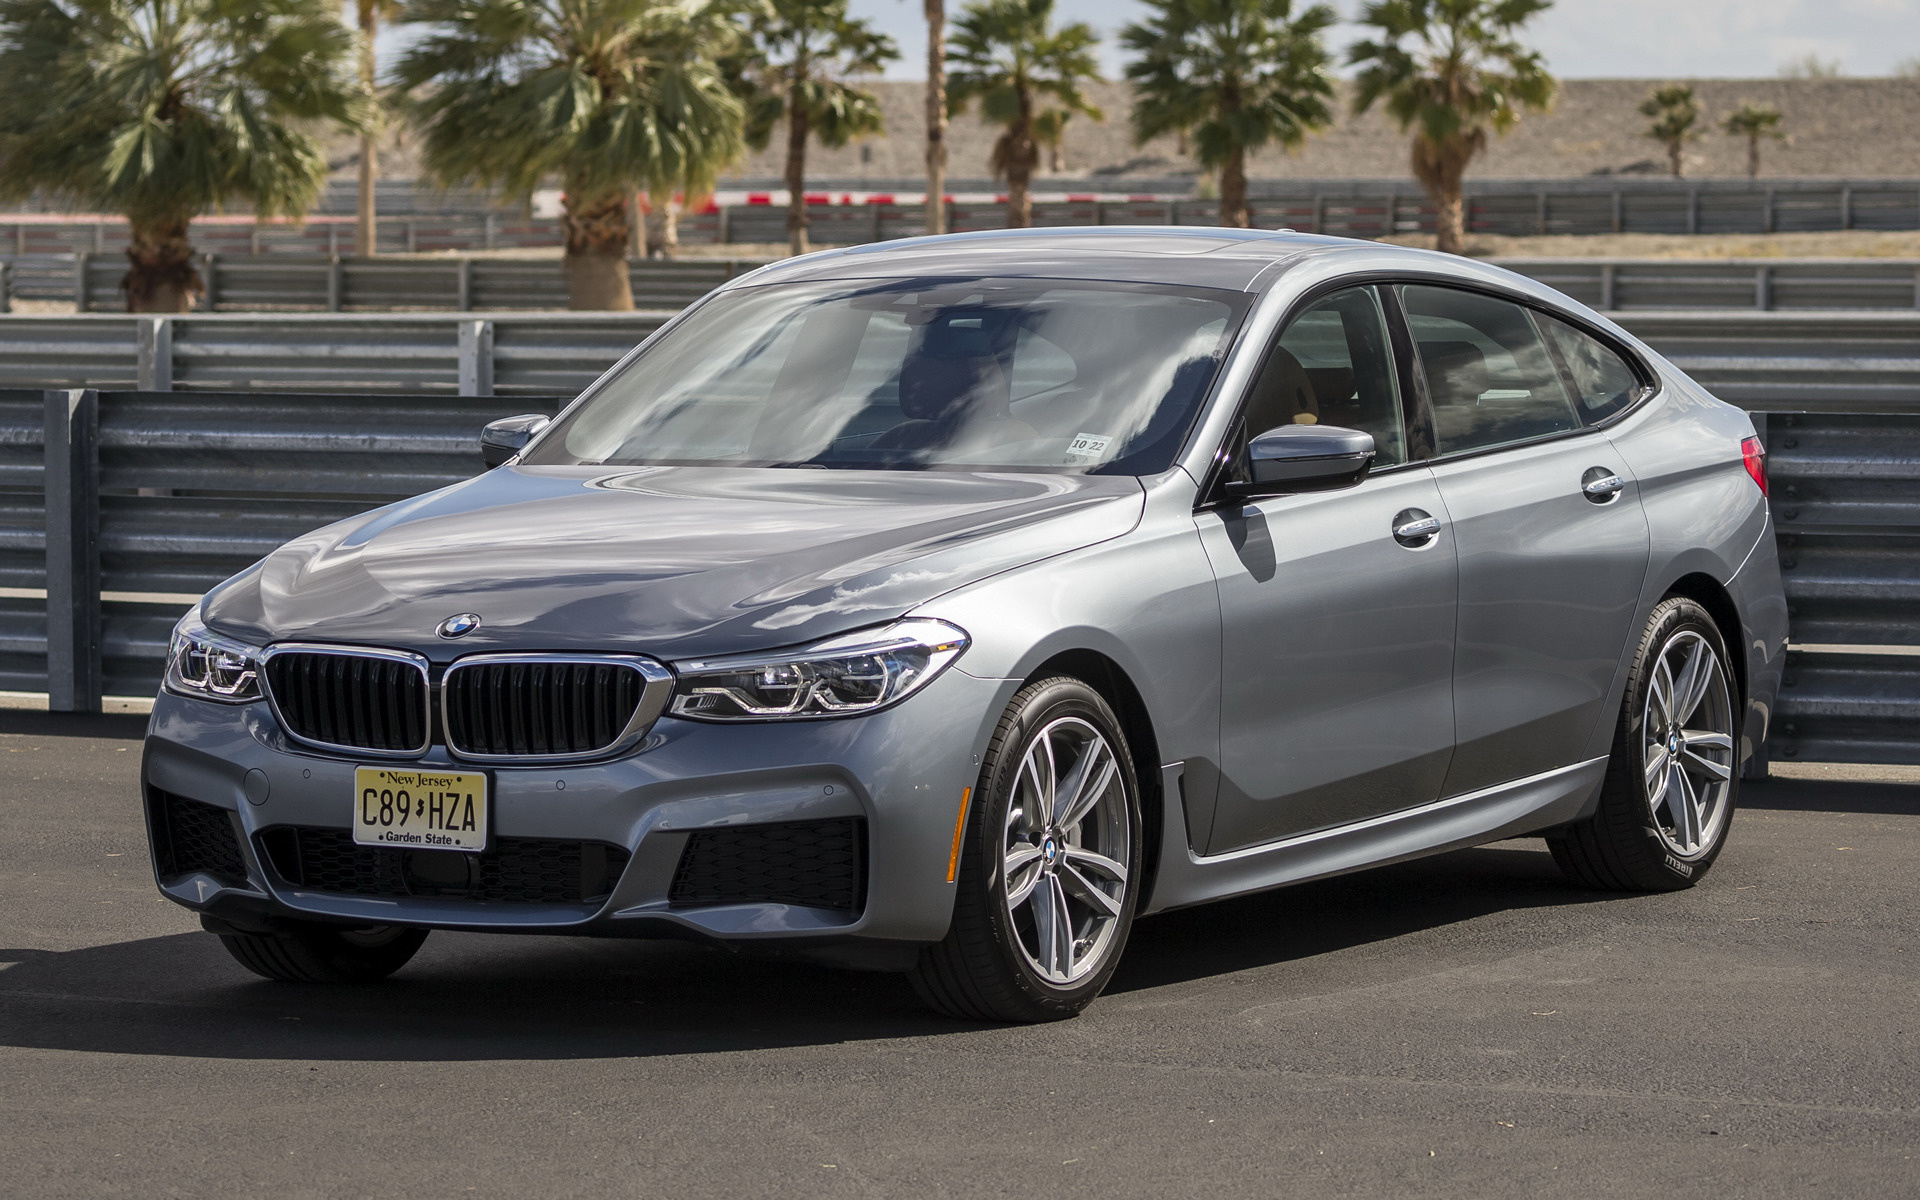 2018 bmw 6 series gran turismo m sport us wallpapers and hd images car pixel